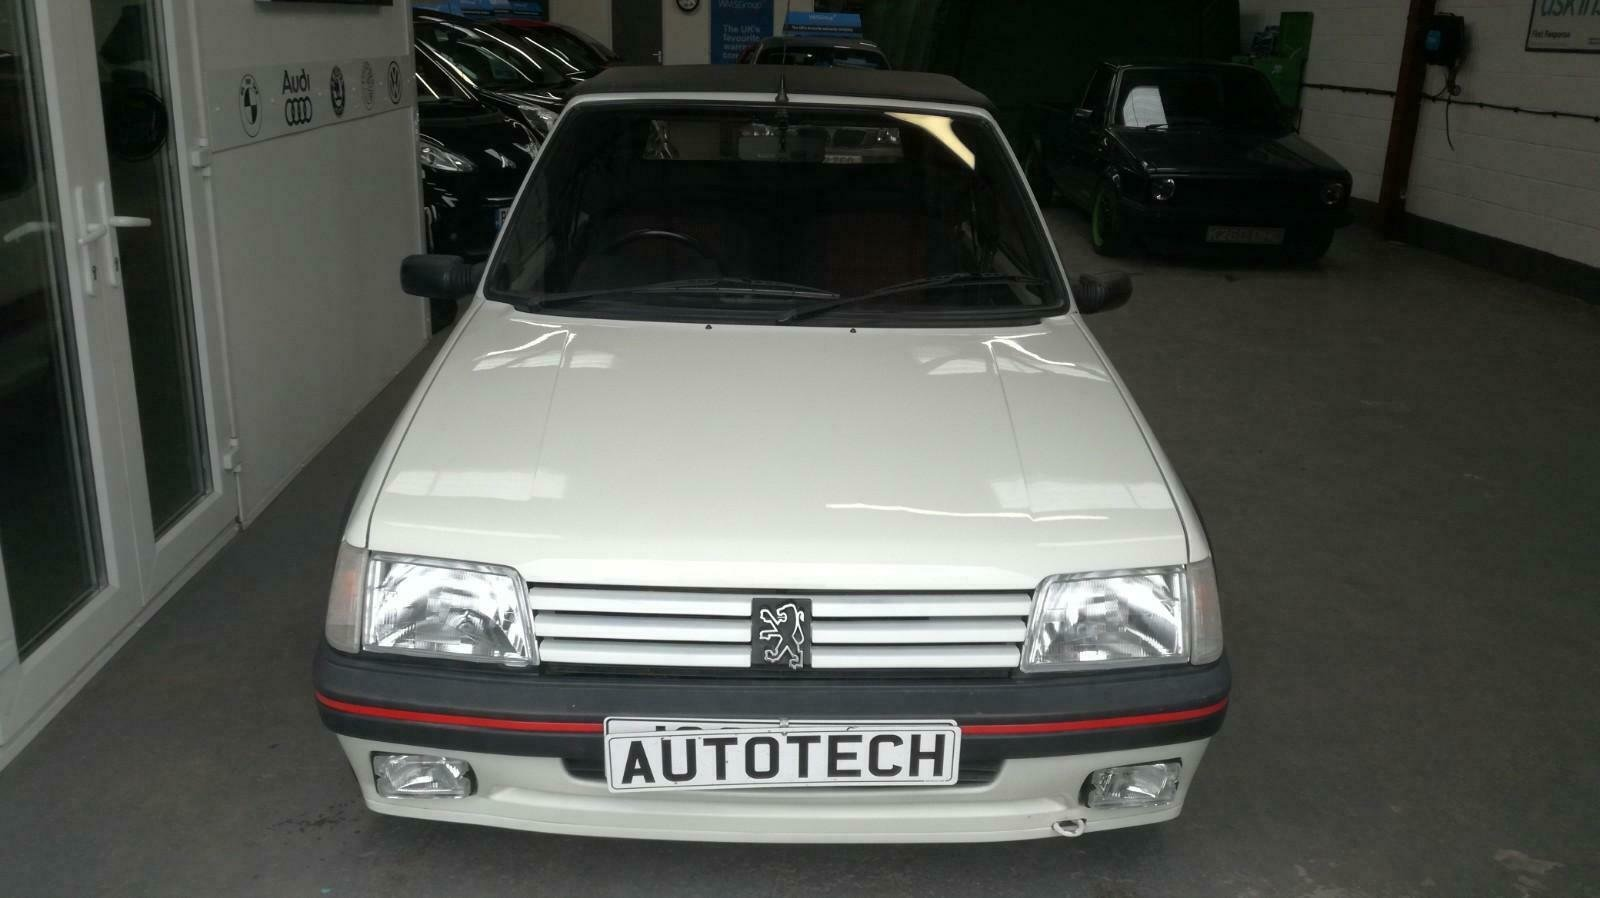 Peugeot 205 CTI 1.6  CABRIOLET 1992 For Sale (picture 3 of 6)